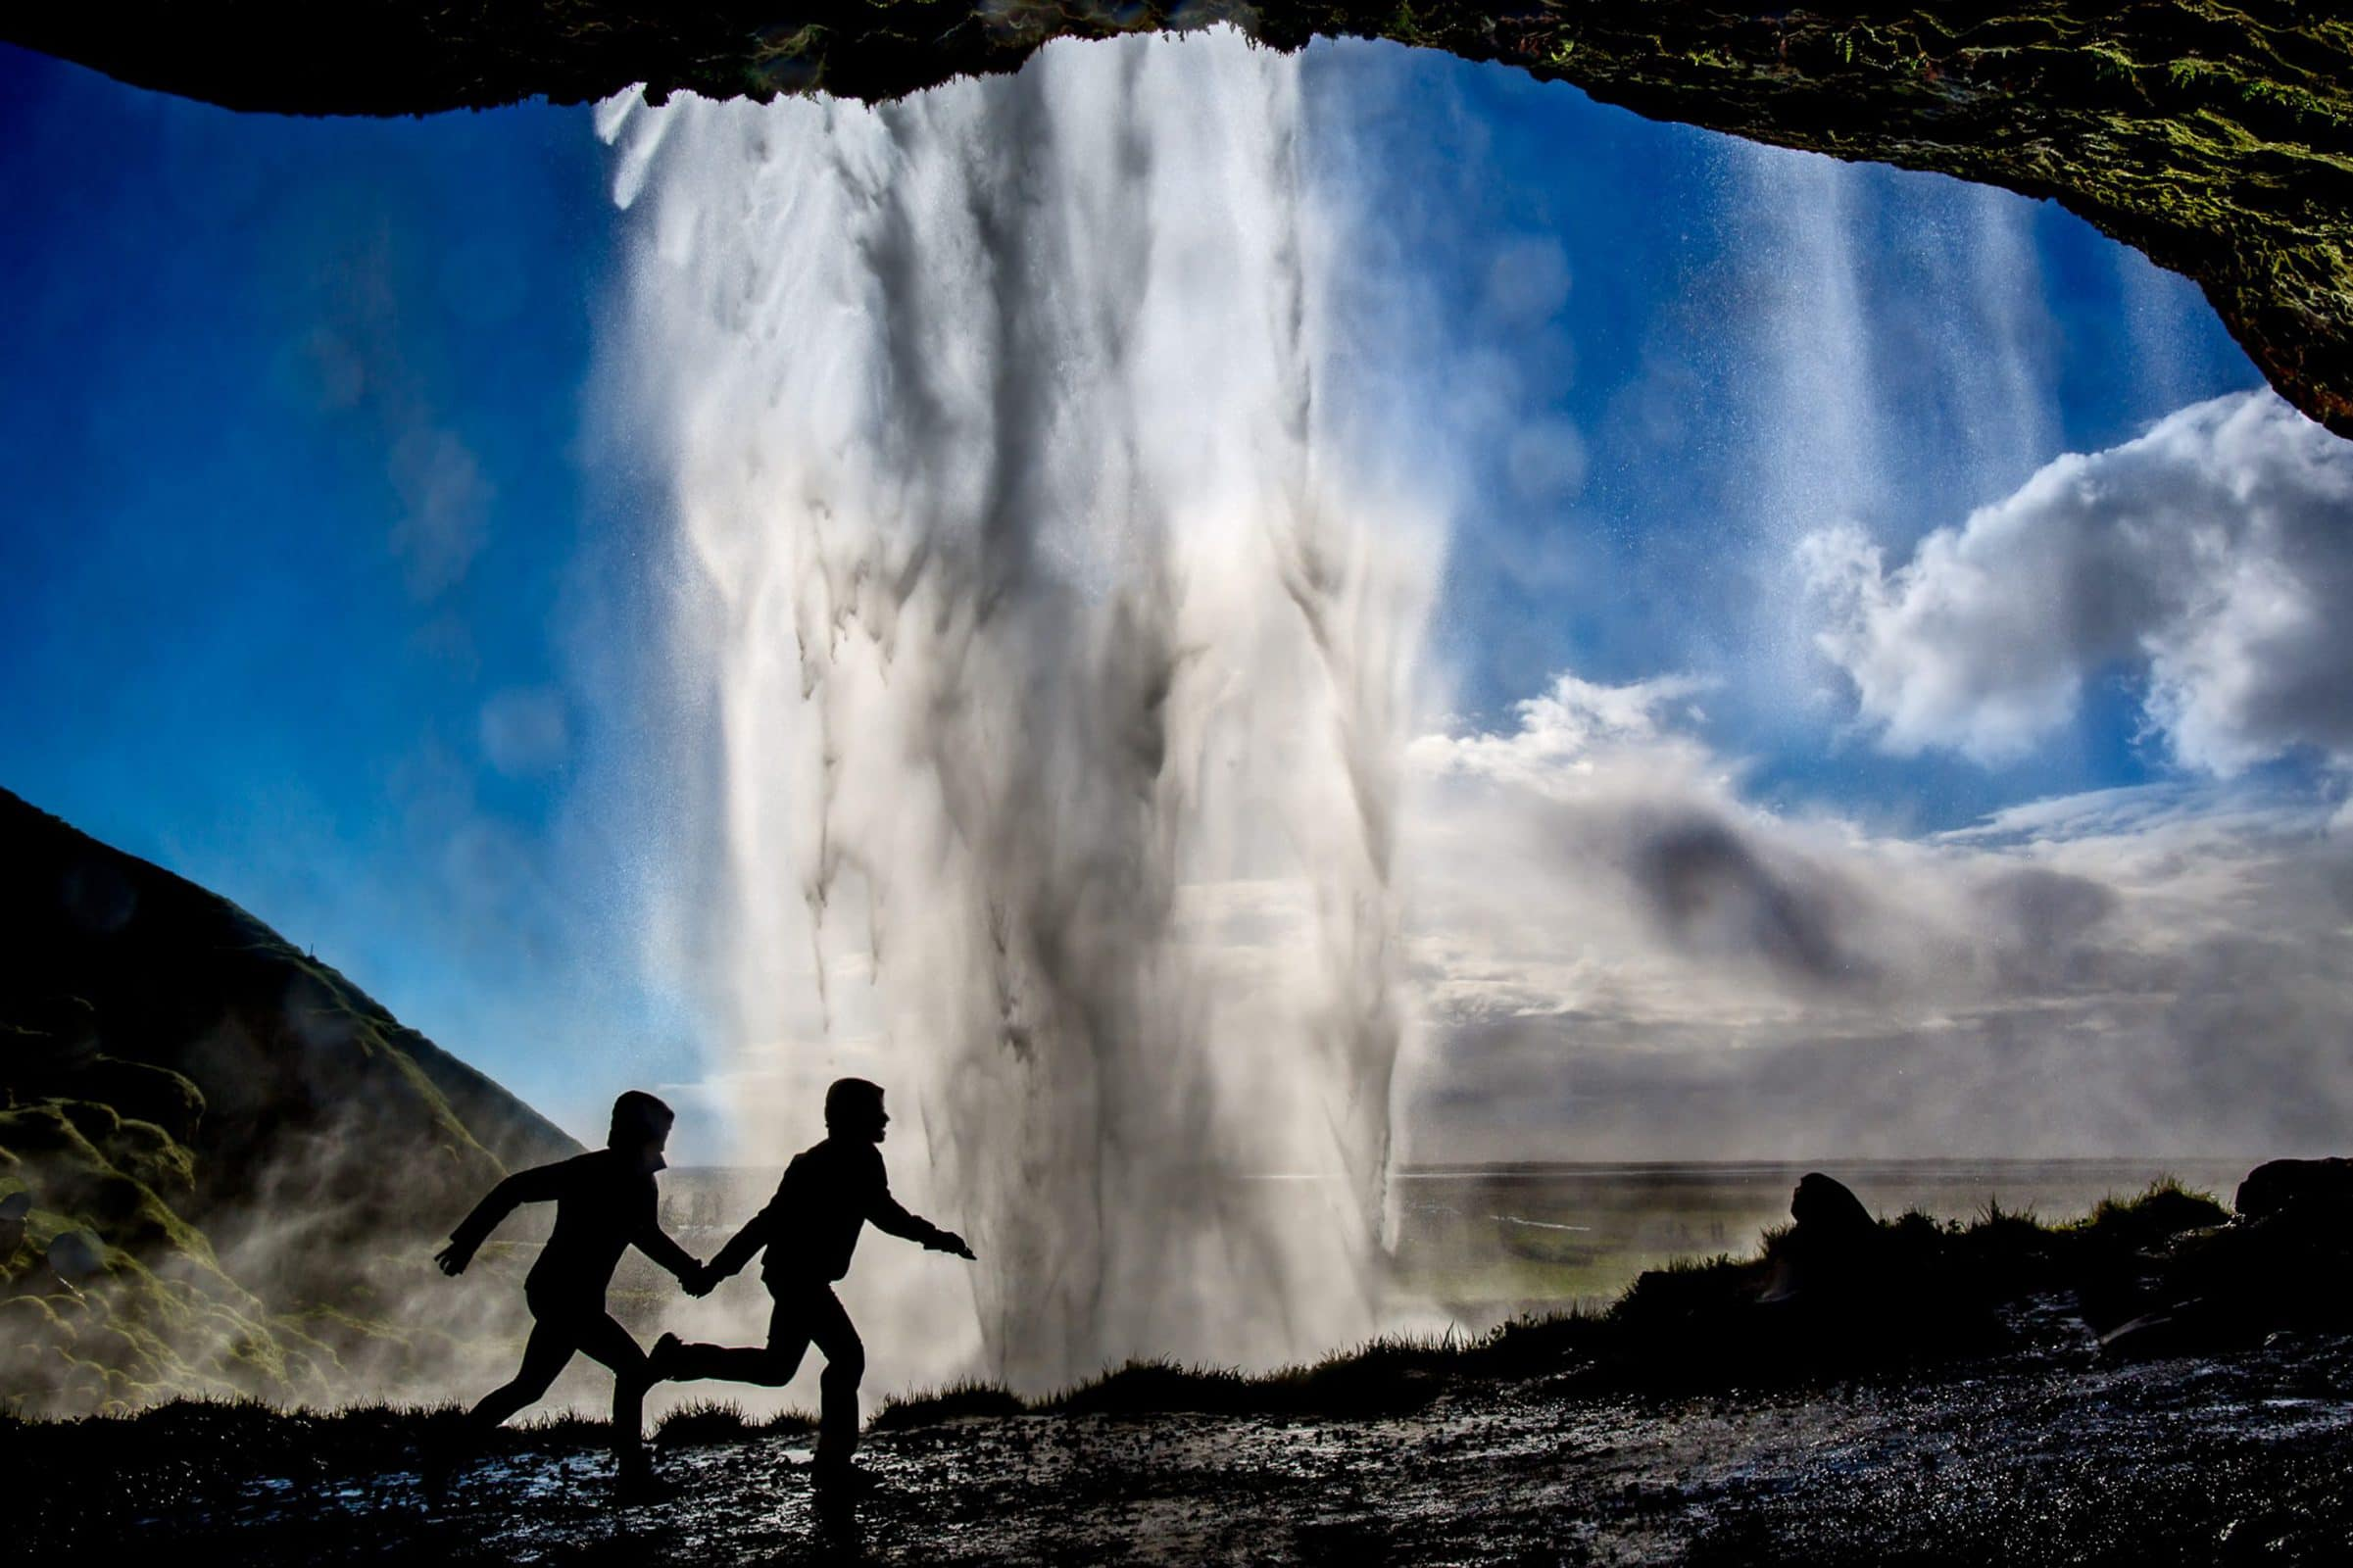 Engagement photo of a couple running under a waterfall in Iceland